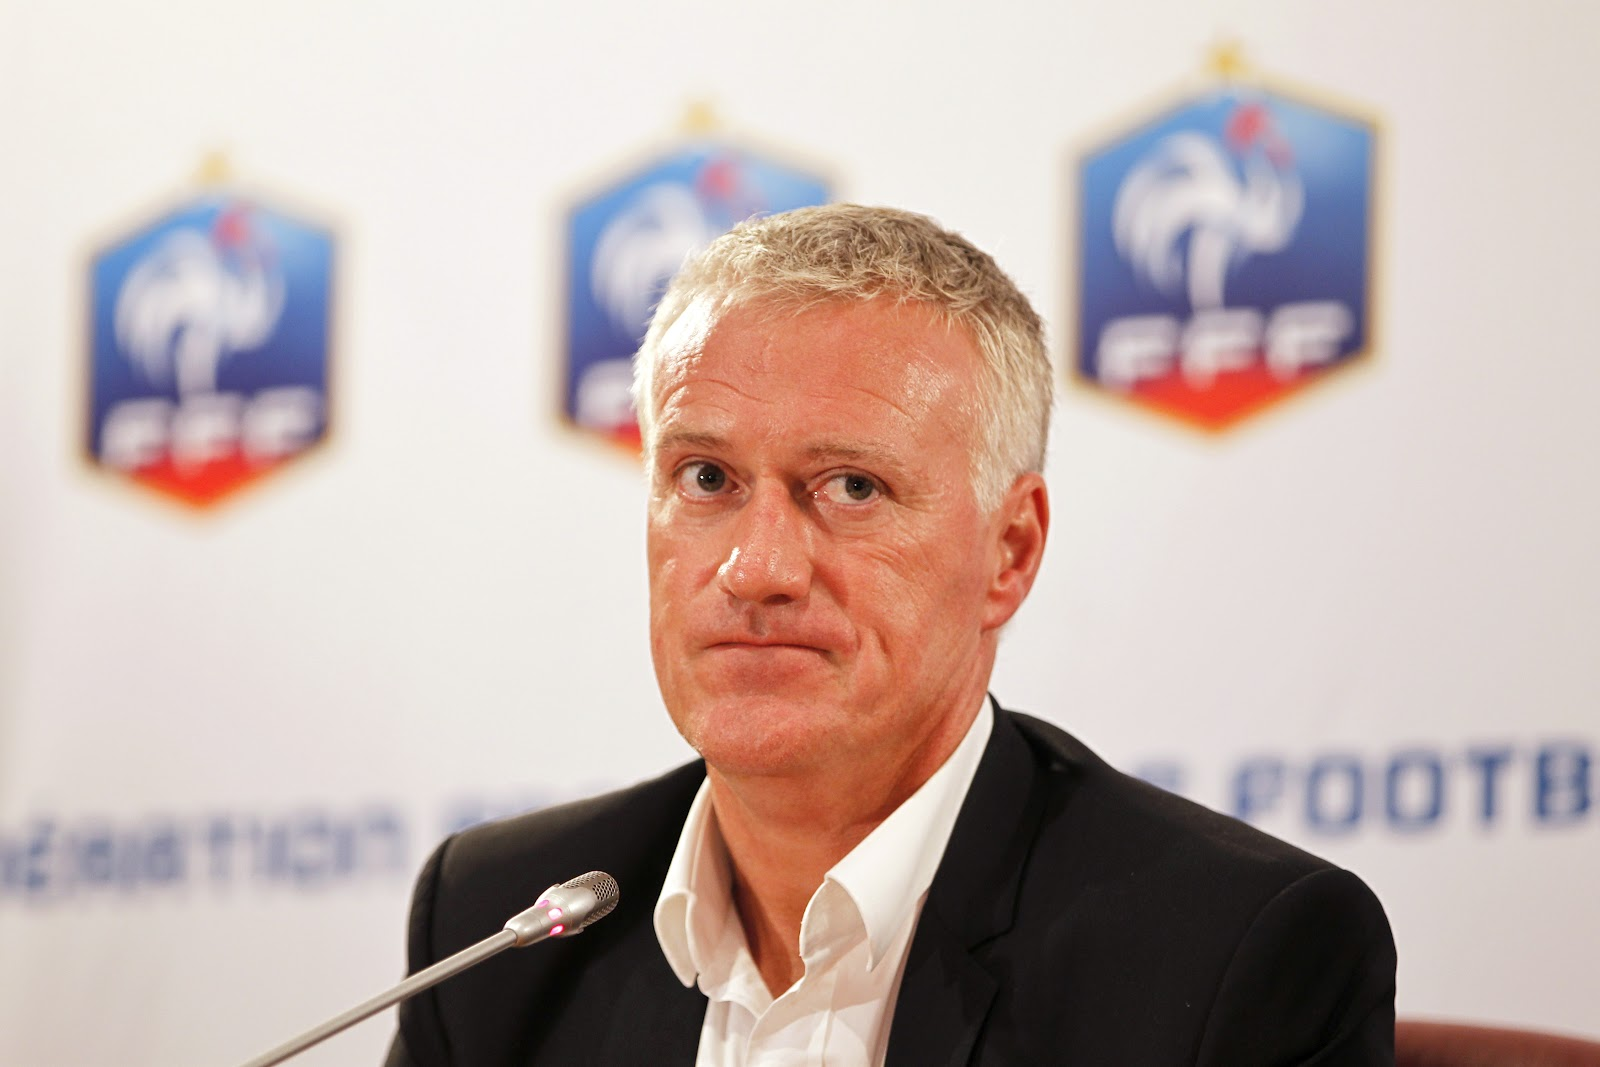 FIFA World Cup 2014 Qualifiers - Will Didier Deschamps ...